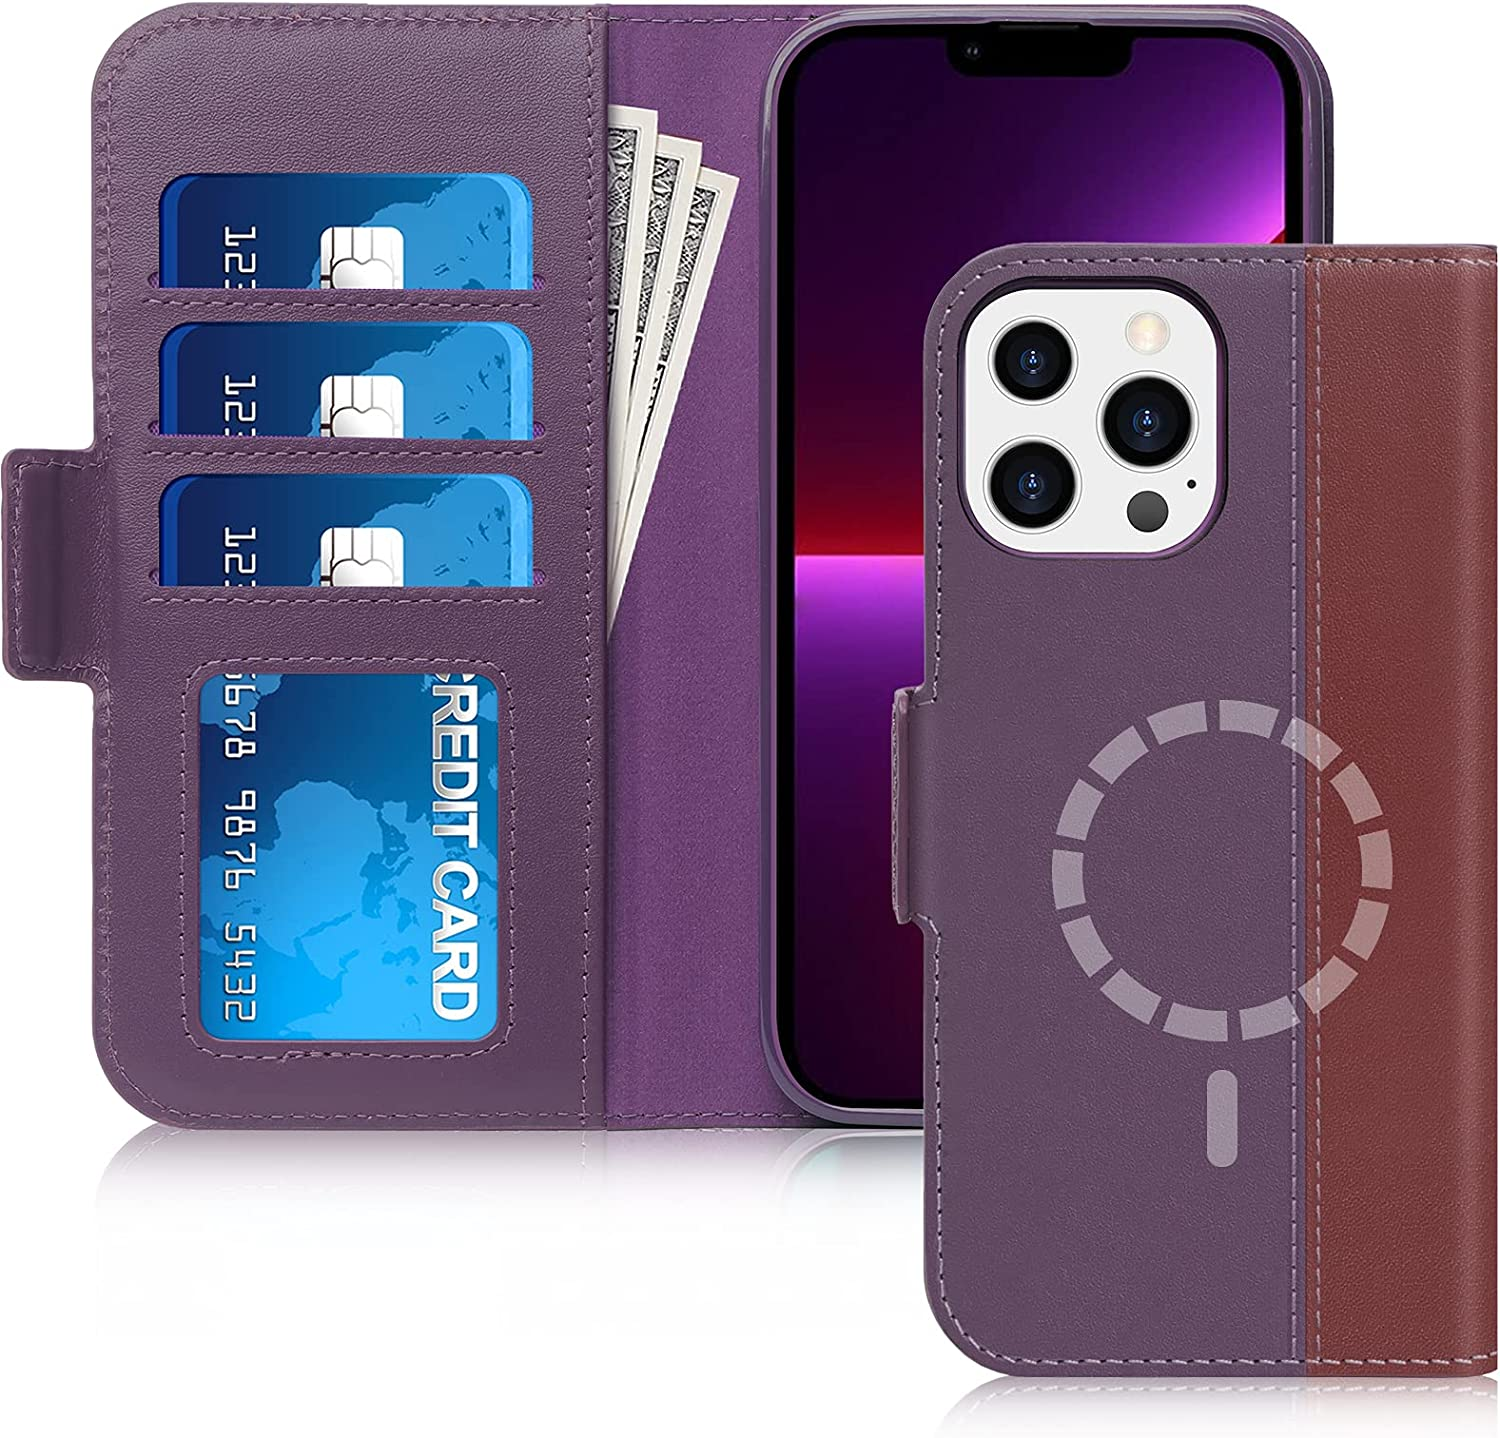 FYY Designed for iPhone 13 Pro Max 5G Case, [Support Magsafe Charging][Genuine Leather] Wallet Phone Case with Card Holder Protective Shockproof Cover for iPhone 13 Pro Max 5G 6.7